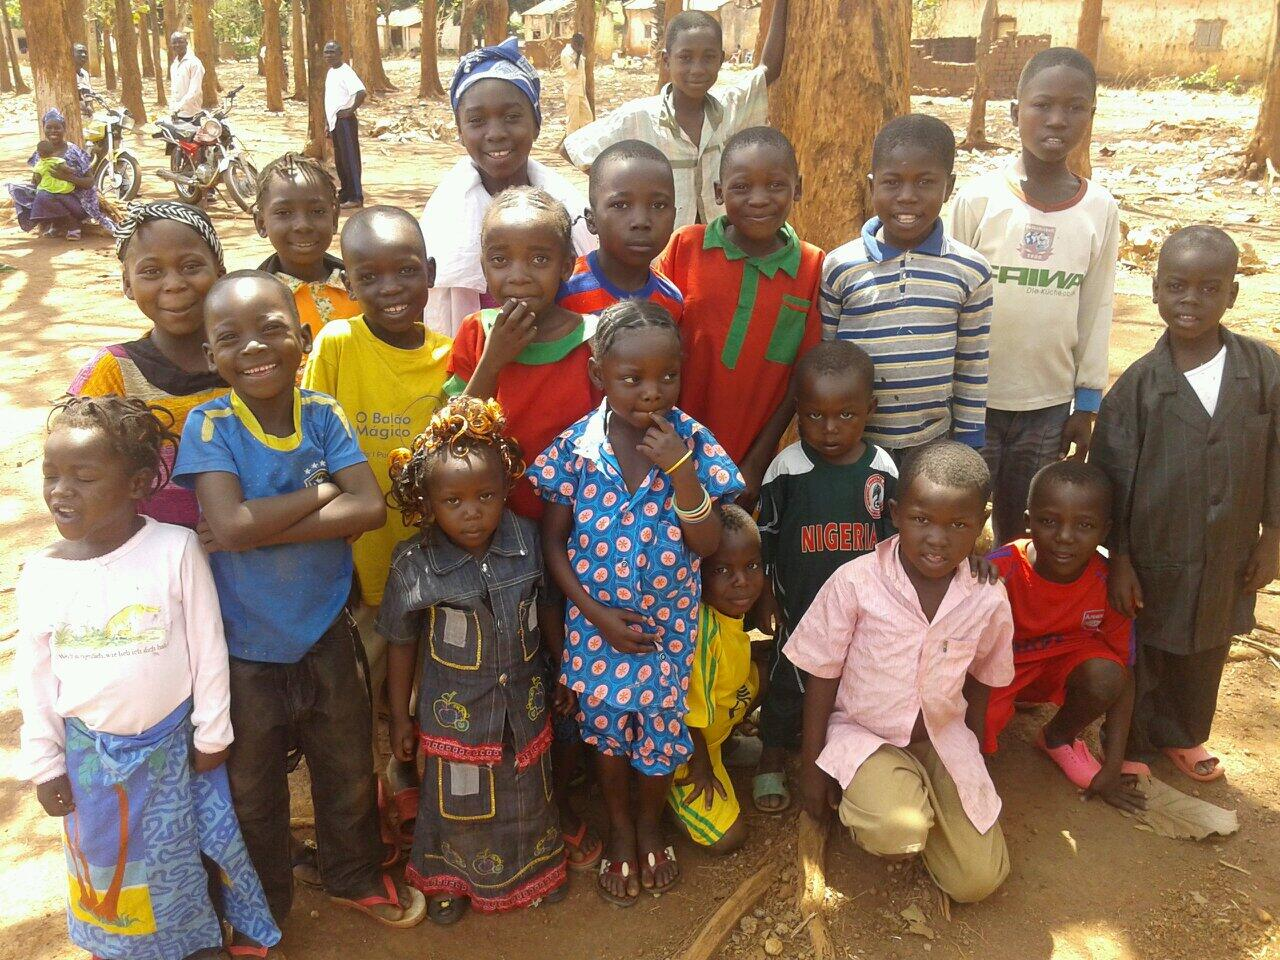 Mar 2; Bozoum: beautiful children in Bozoum. Will they have a future after Seleka terror? Who's to assist? #CARcrisis http://t.co/pfAaAtOFsd